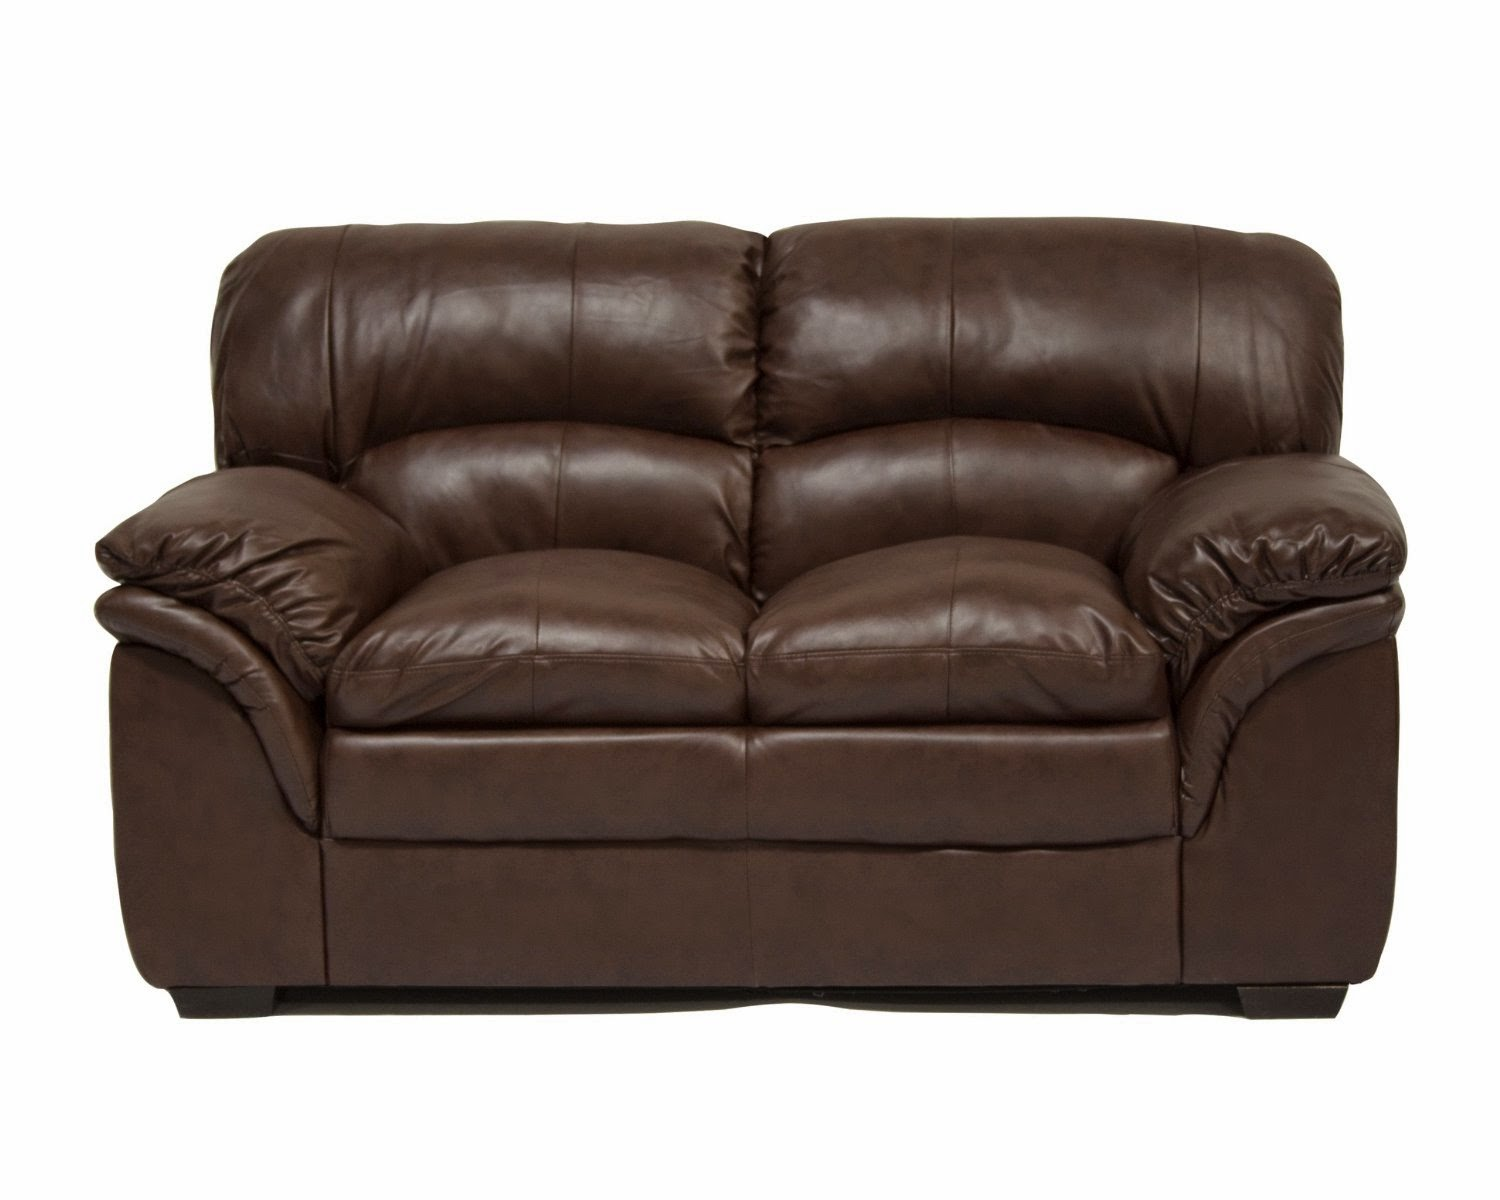 Cheap reclining sofas sale 2 seater leather recliner sofa for Leather sectional sofa